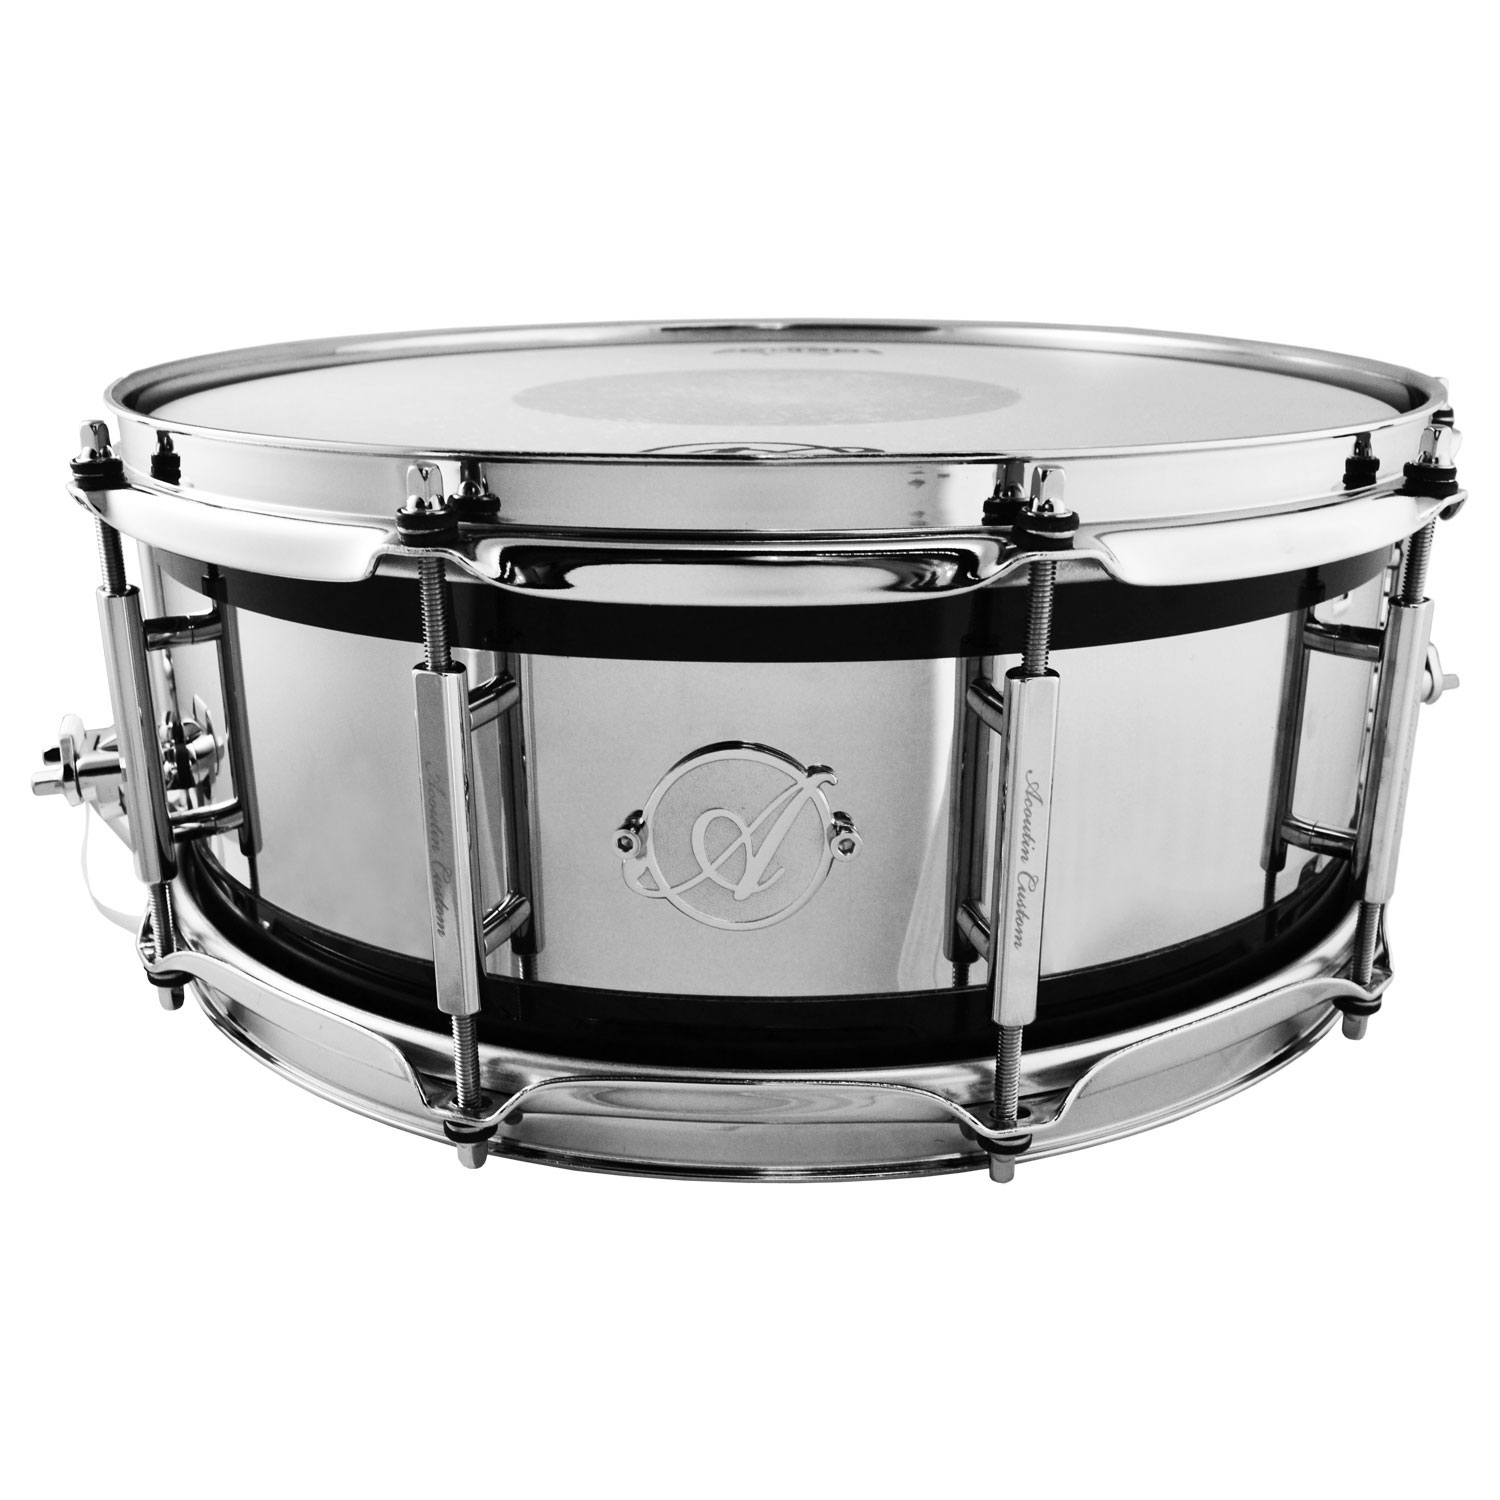 "Acoutin 5.5"" x 14"" Wenge & Polished Stainless Steel Snare Drum"